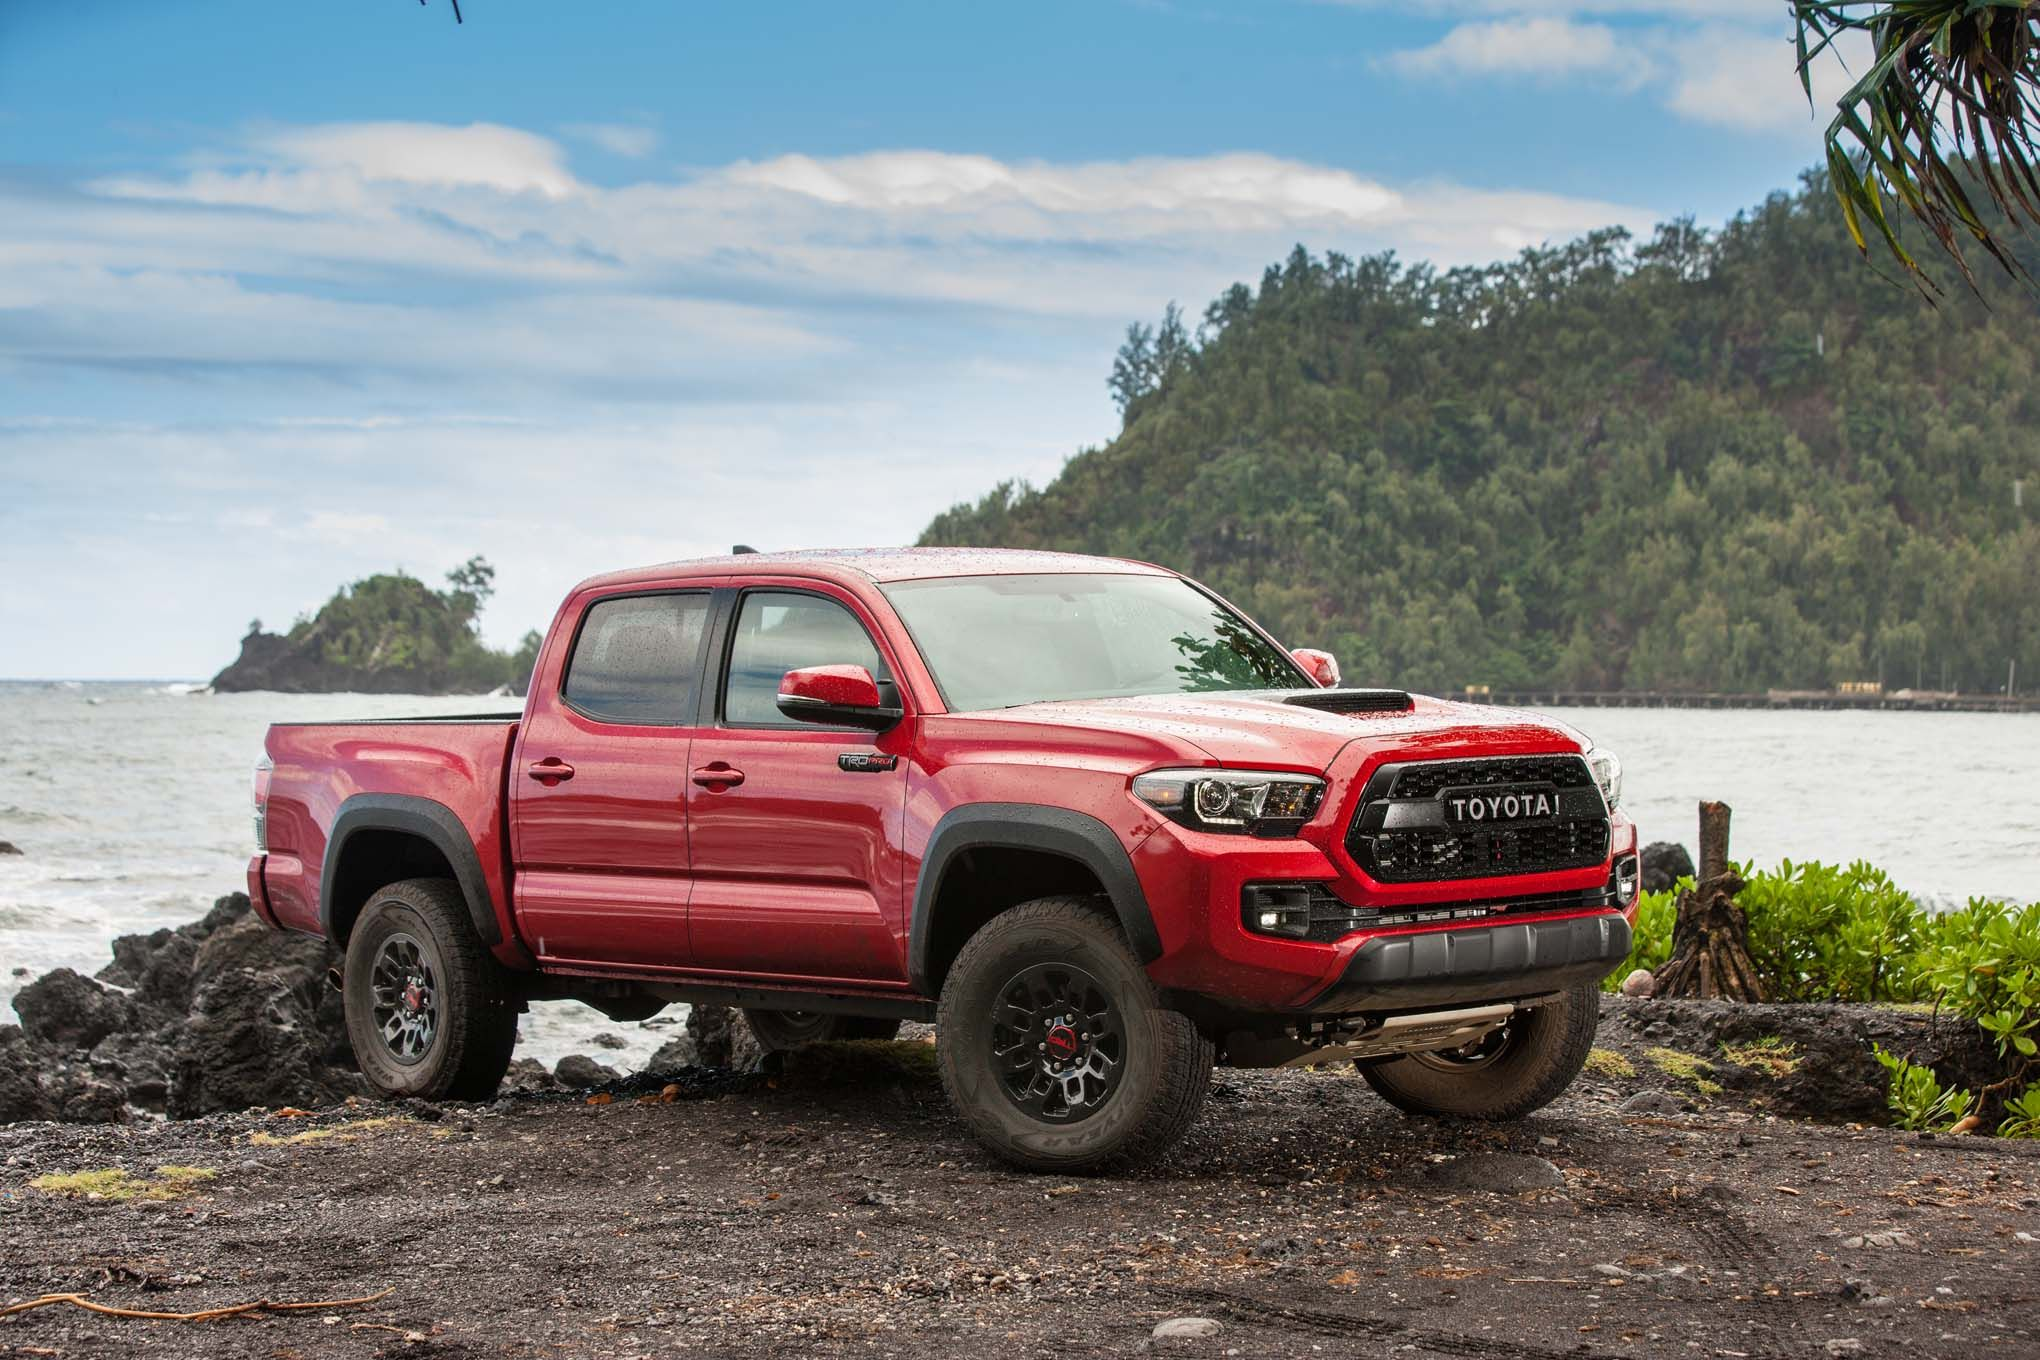 The 25 best toyota tacoma review ideas on pinterest toyota tacoma x runner used tacoma and used toyota tacoma 4x4